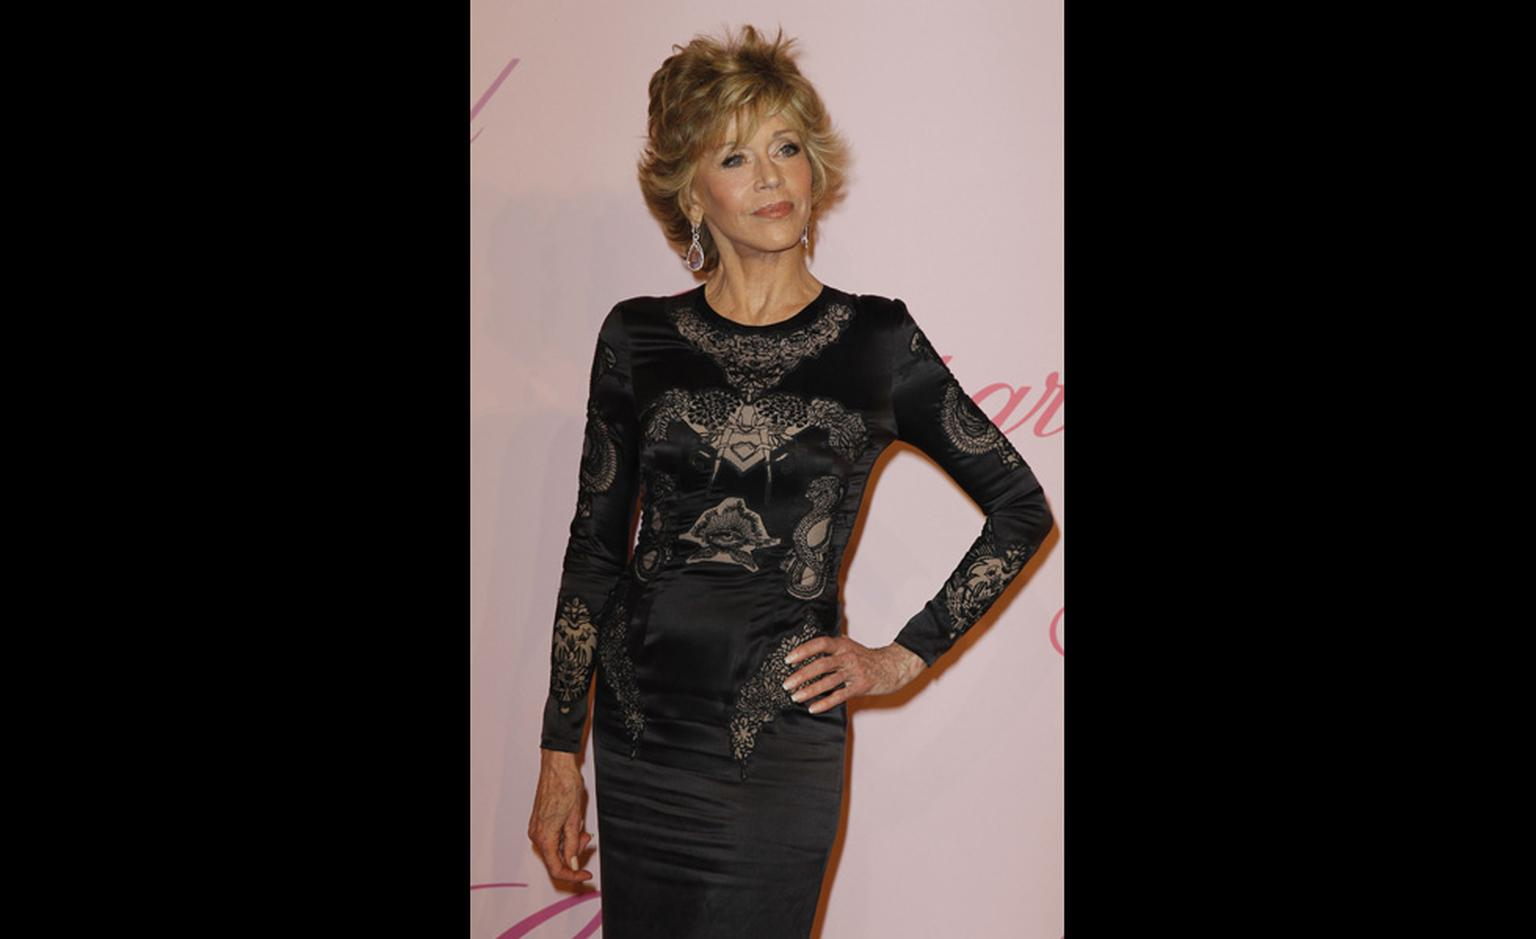 Jane Fonda at Chopard's Crazy Horse party at the Cannes Film Festival 2011 wearing Chopard jewels.